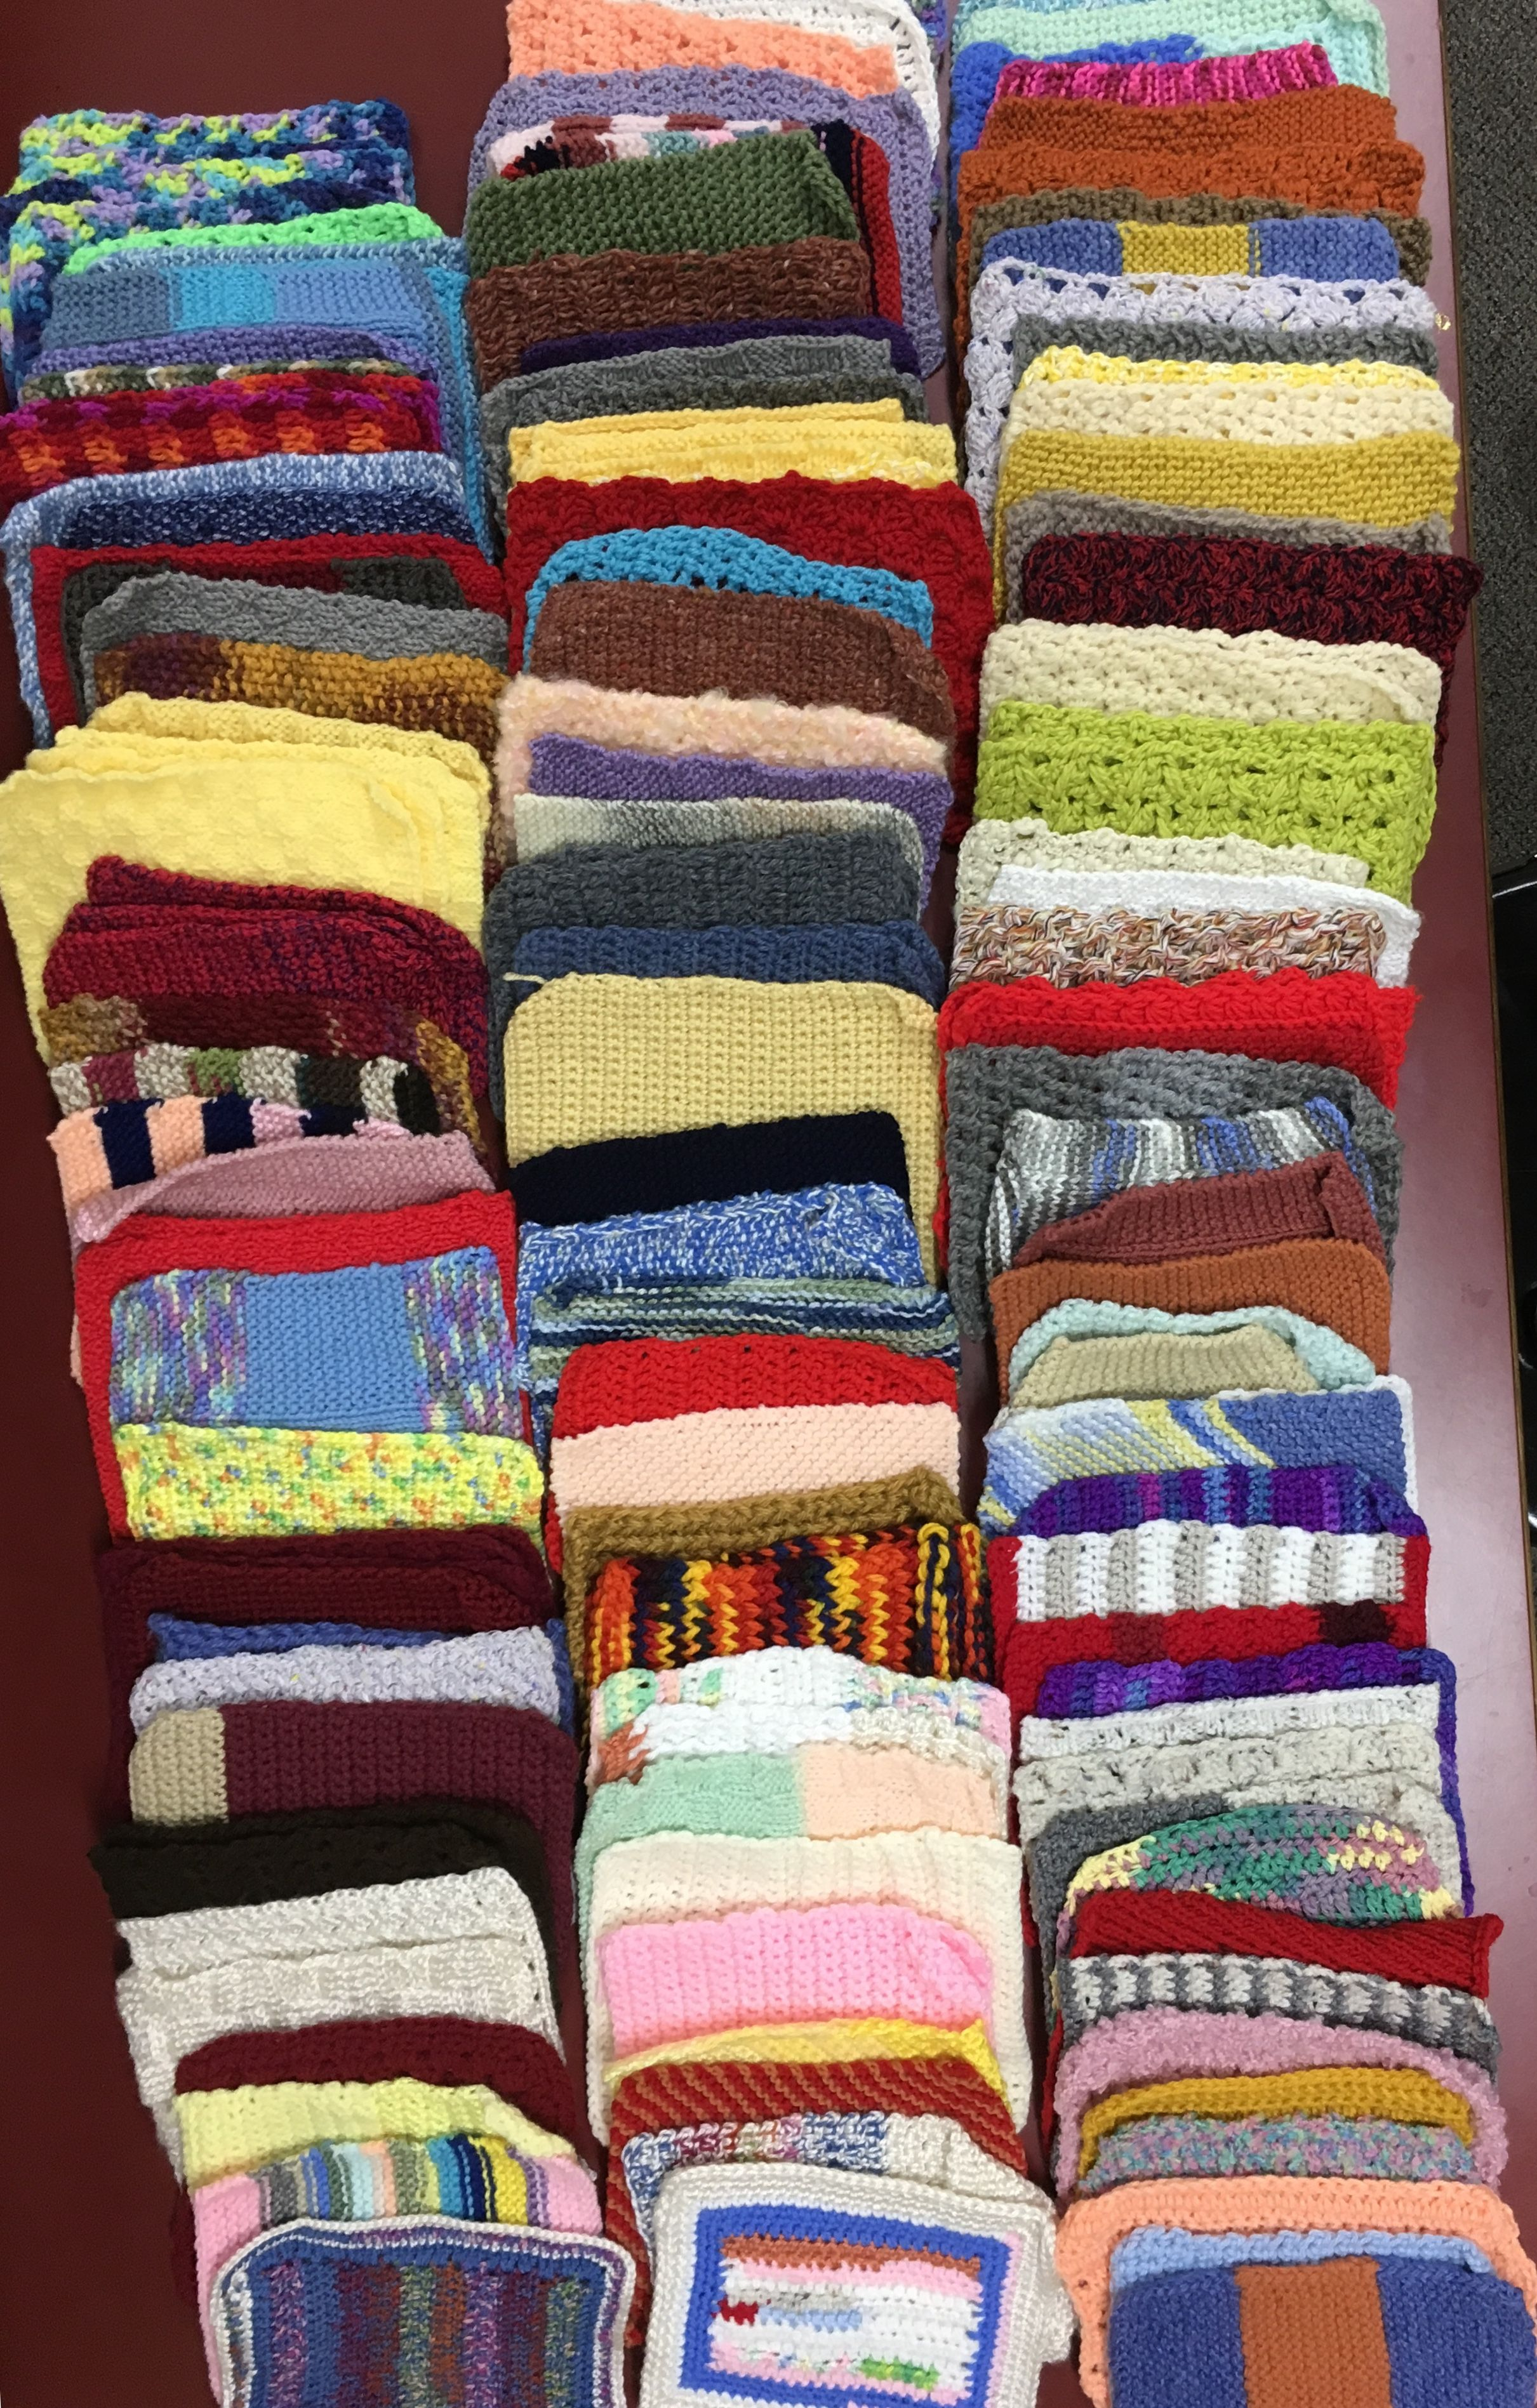 Summer charity 2018 Knitted squares for Warm up America | knitting